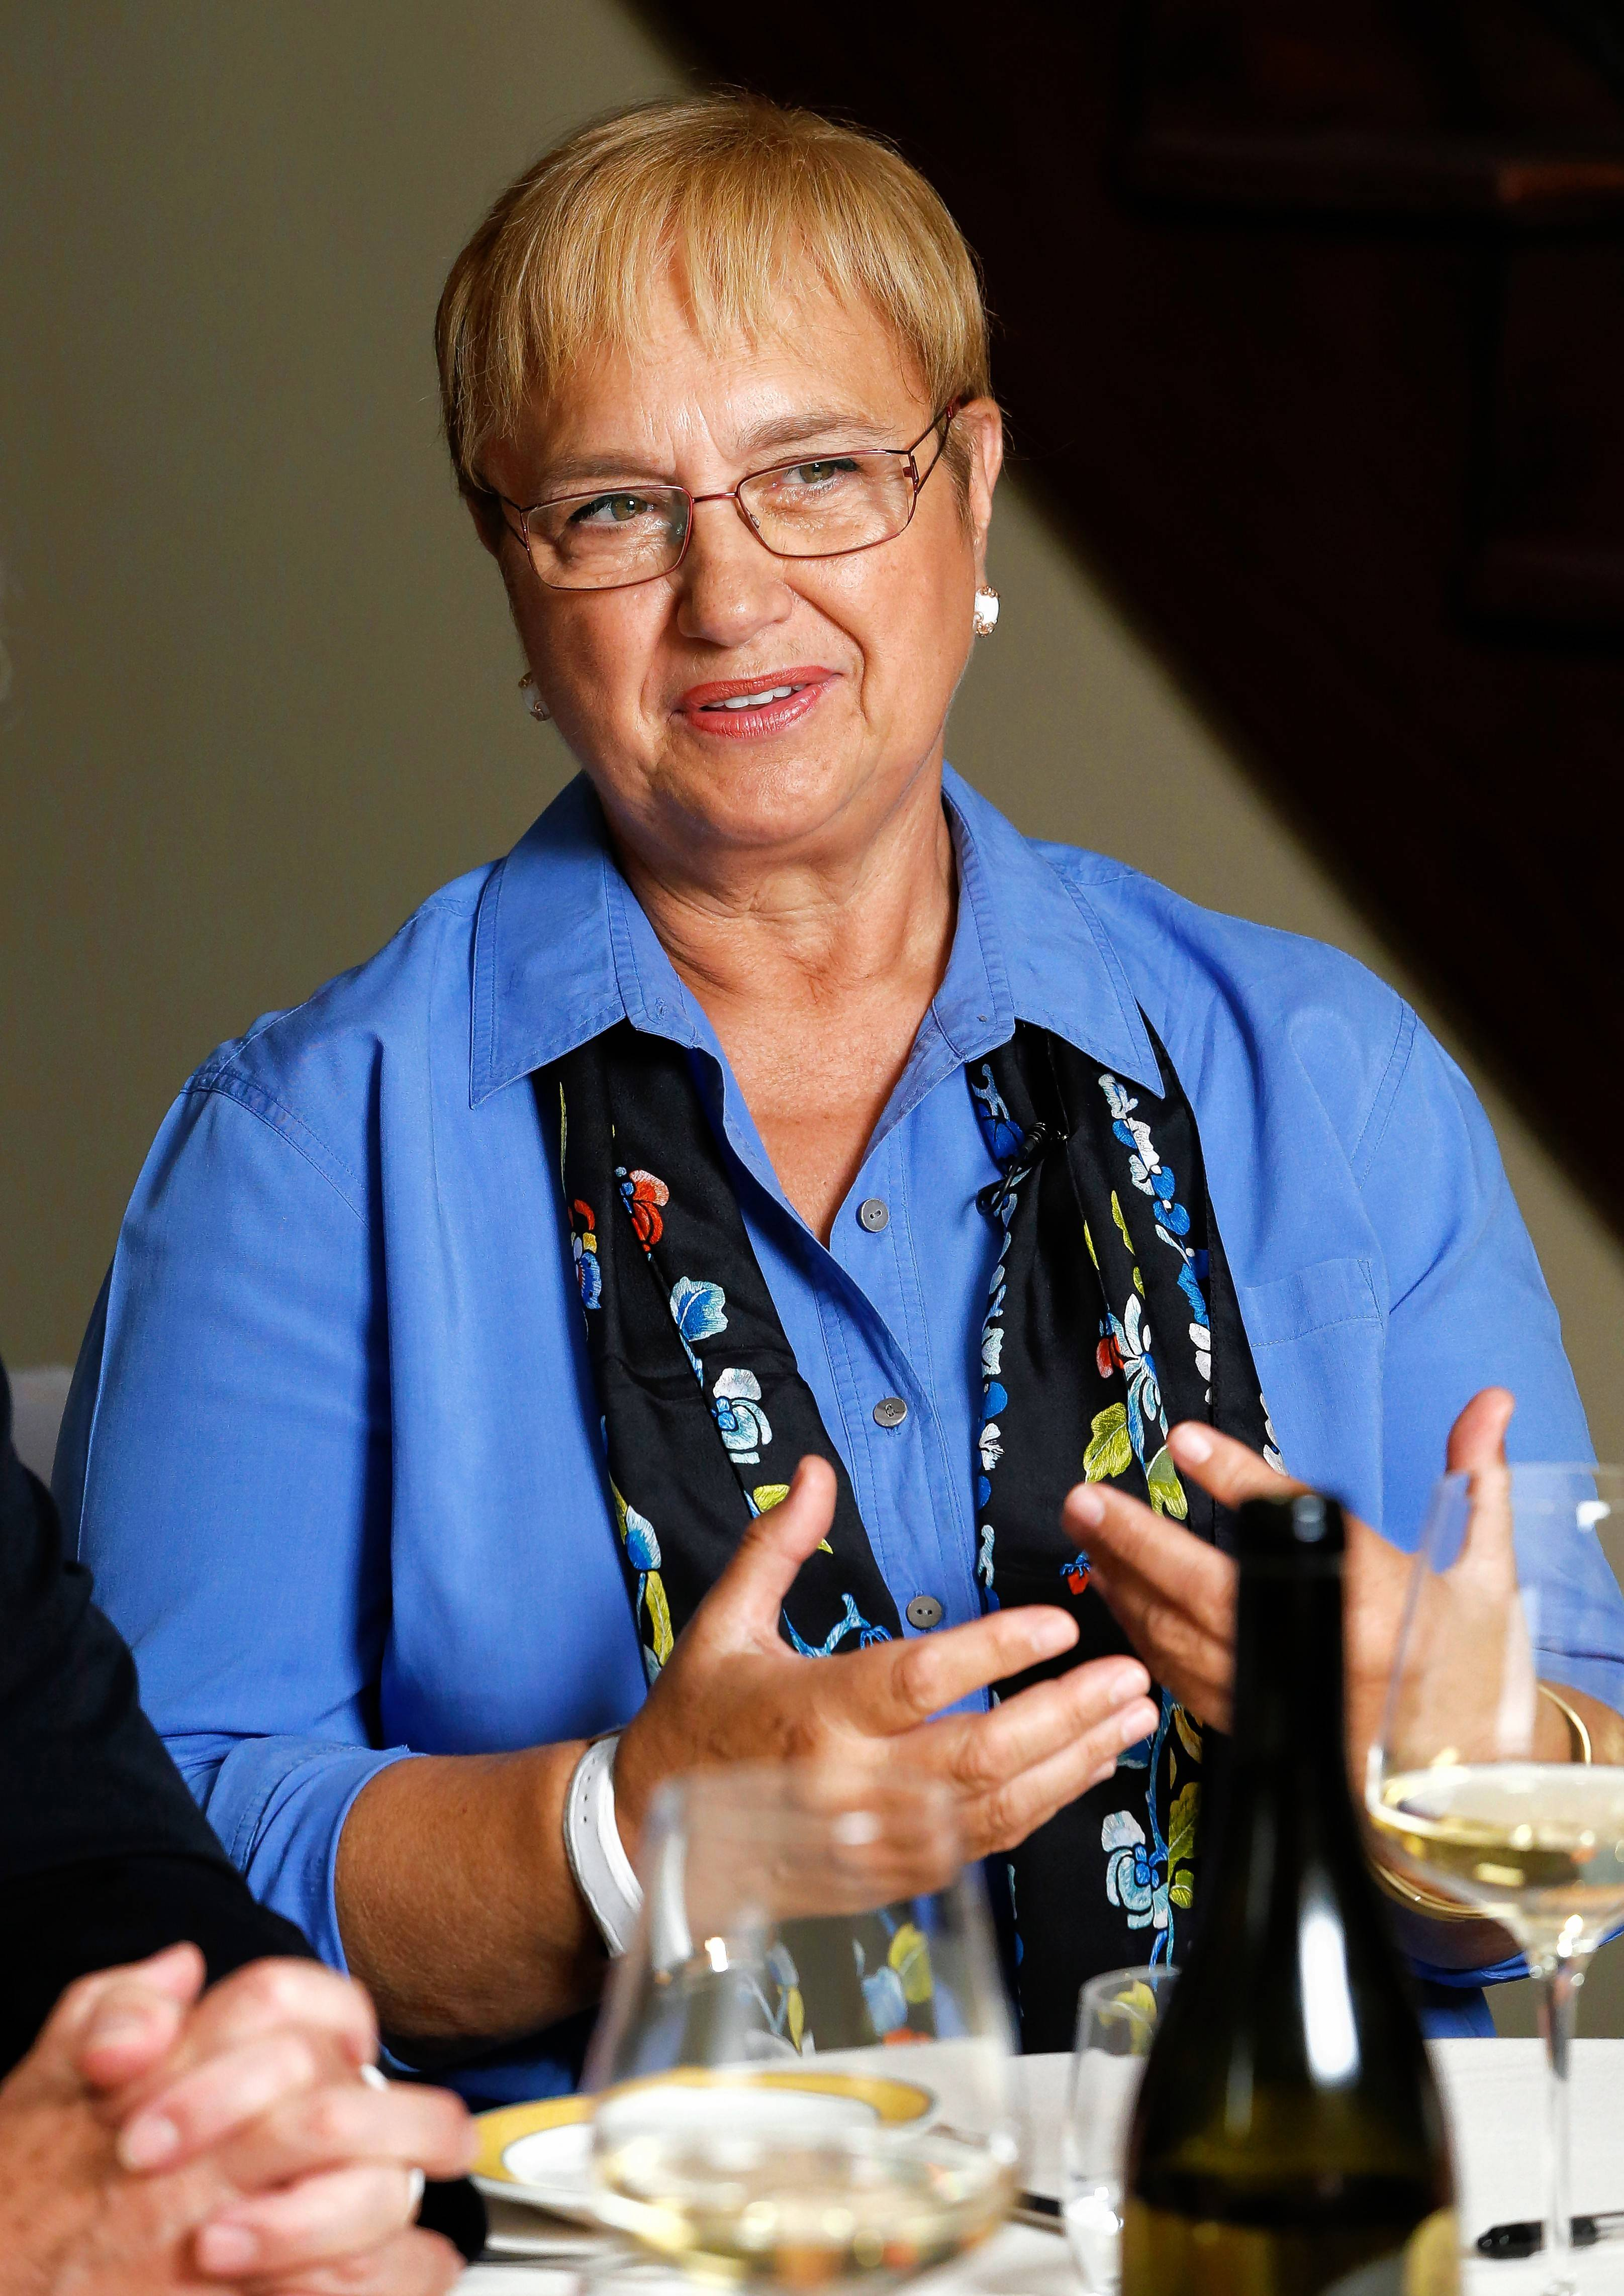 Emmy Award-winning TV chef Lidia Bastianich discusses her new cookbook Thursday, Nov. 9, in Belushi Performance Hall at the McAninch Arts Center at the College of DuPage.